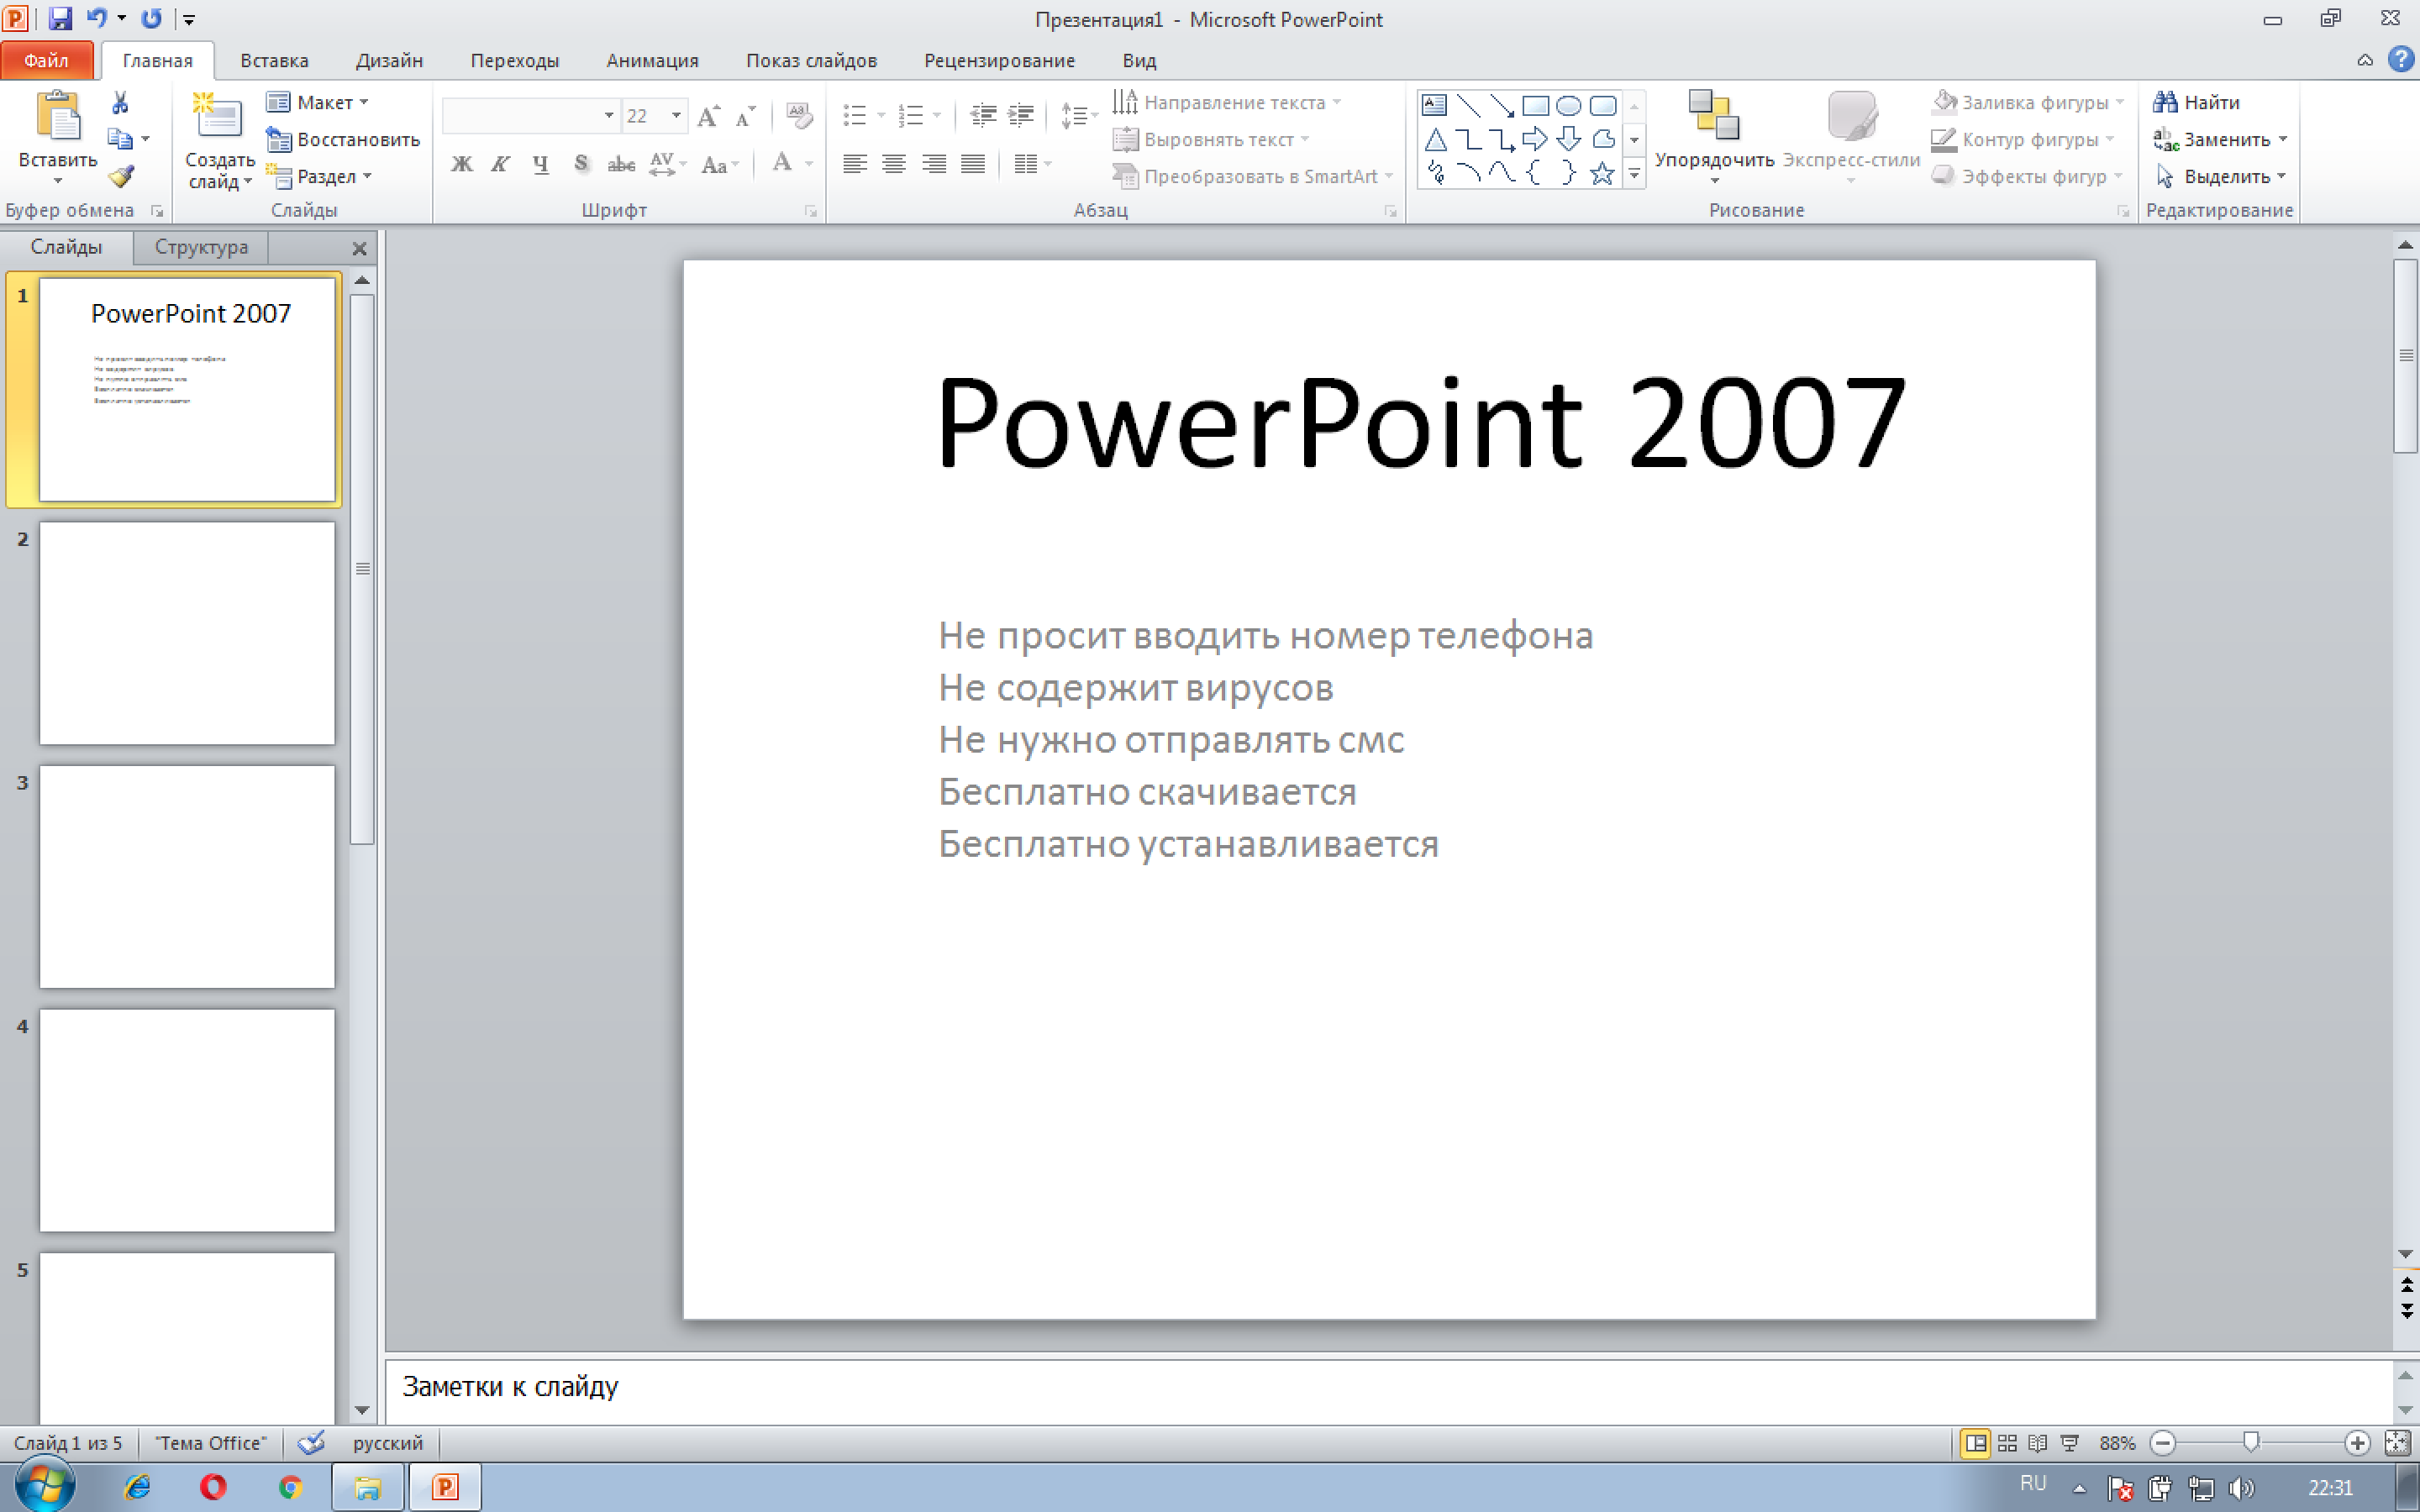 powerpoint 2007 templates free